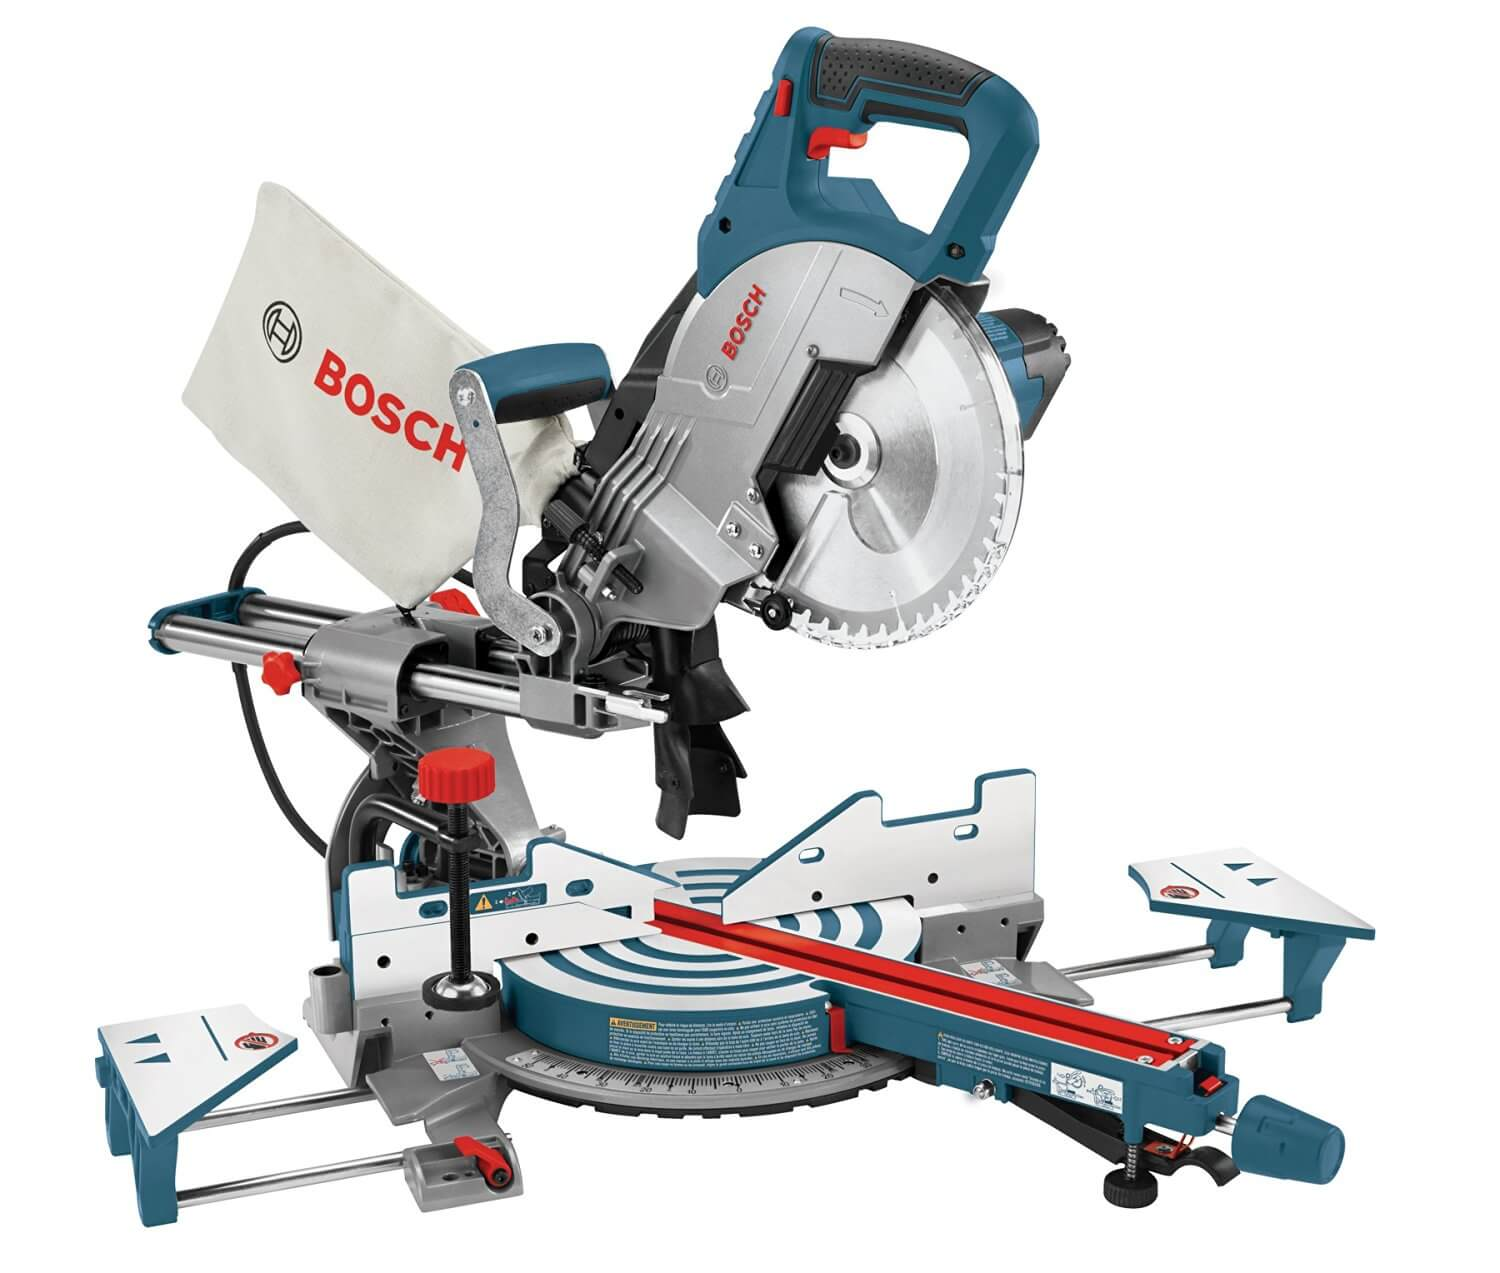 bosch-cm8s-compound-miter-saw-02